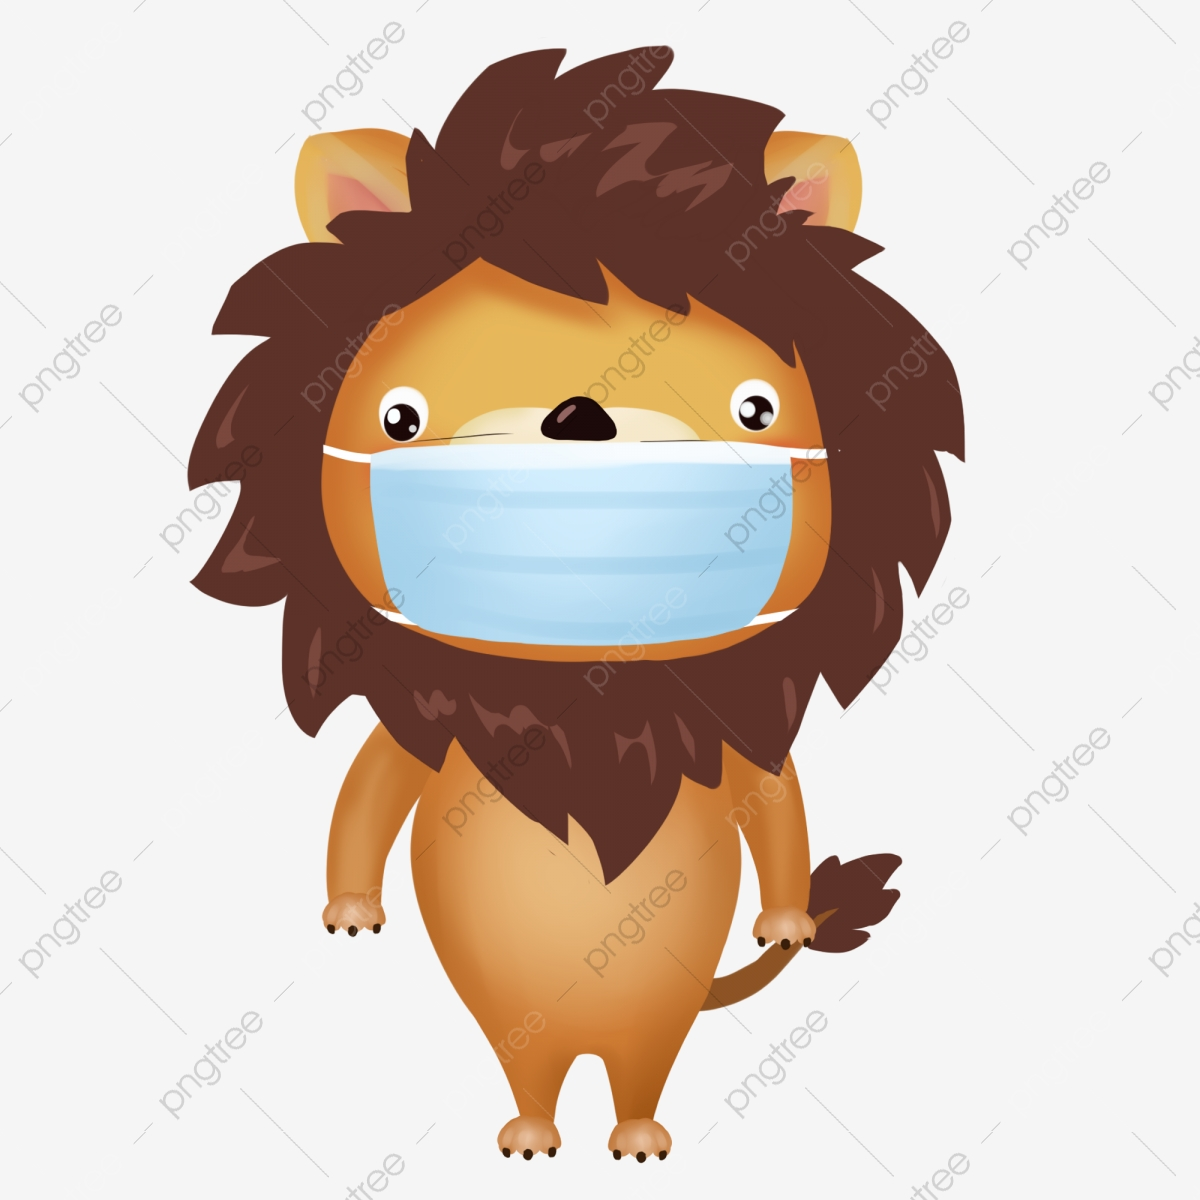 Lion Wearing A Mask Lion King Clipart Lovely Animals Fight The Epidemic Png Transparent Clipart Image And Psd File For Free Download British crown icon cartoon vector. https pngtree com freepng lion wearing a mask 5418121 html